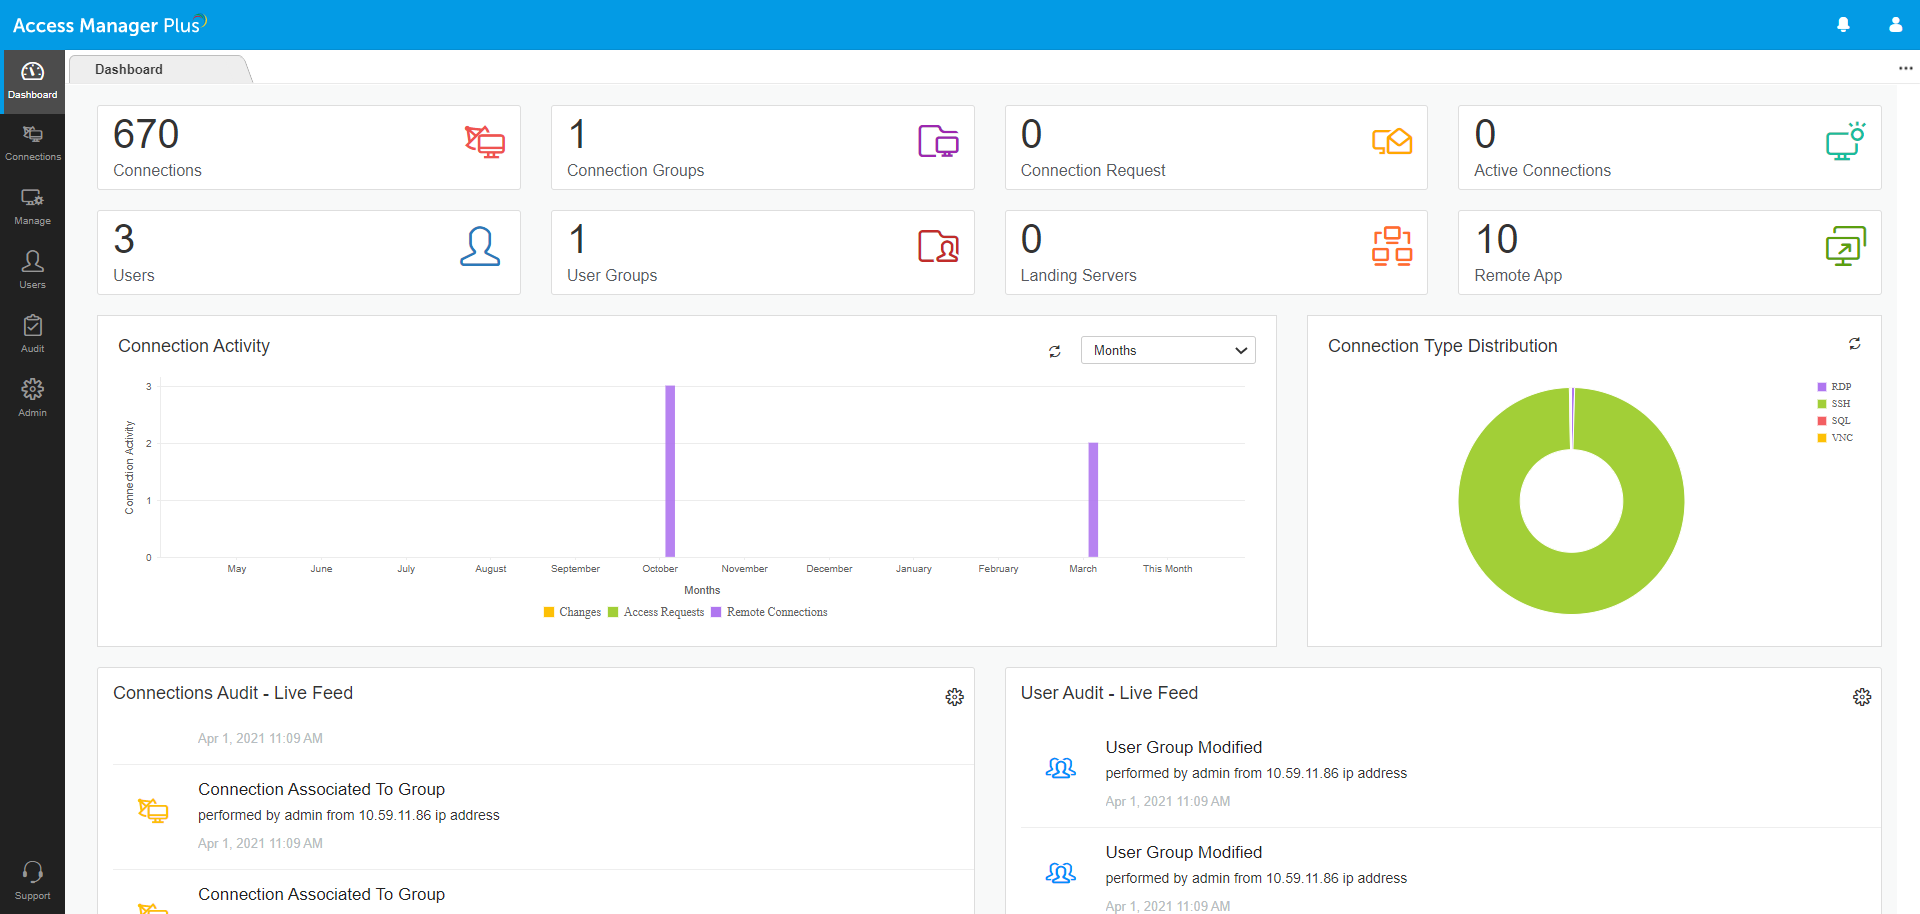 Centralized management dashboard in Access Manager Plus